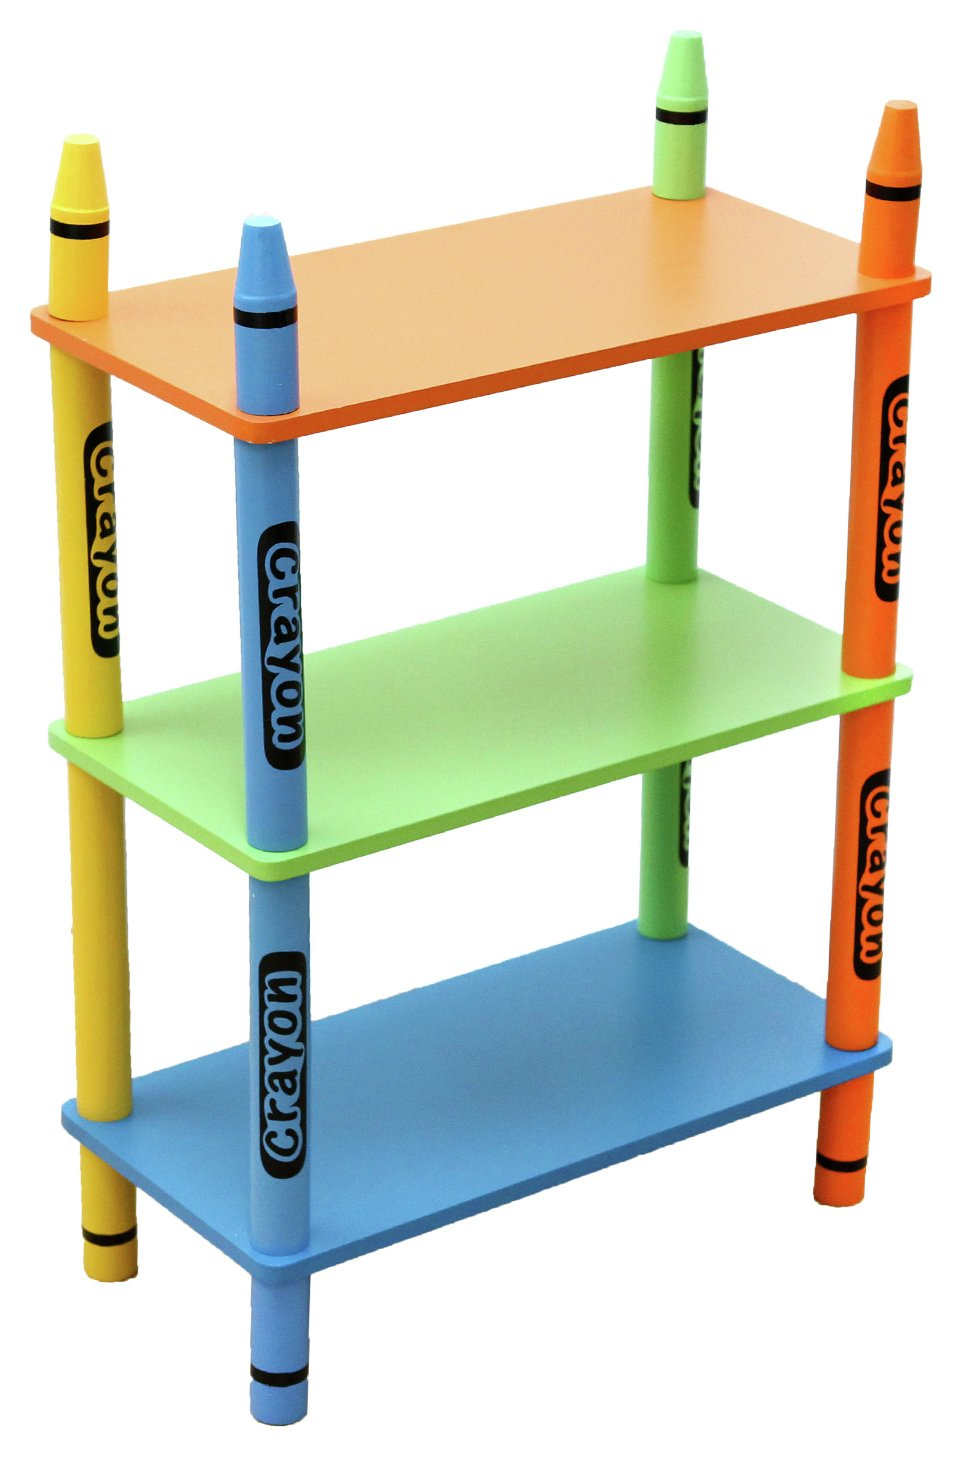 Image of Kiddi Style Crayon 3 Tier Shelves - Green